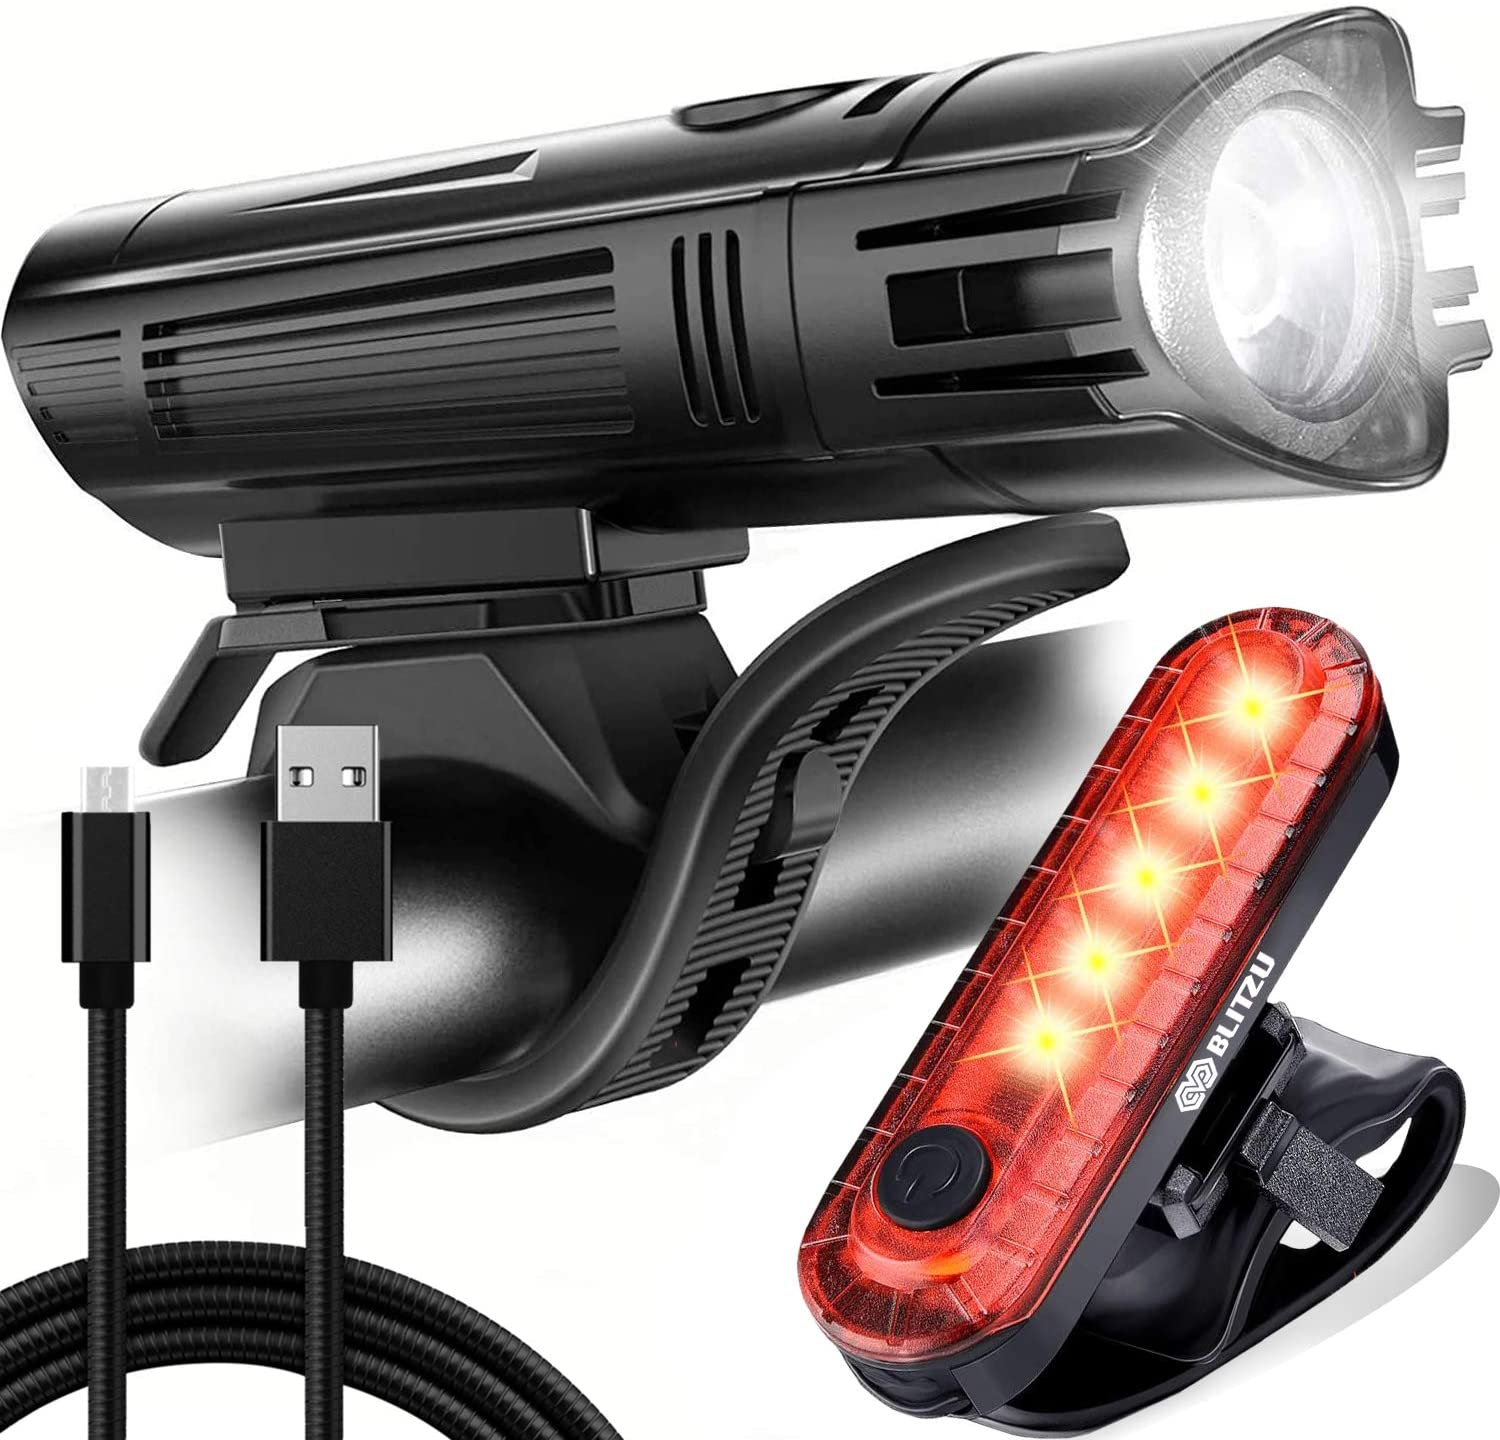 LED USB Bycicle Light Rechargeable Headlamp Headlight Bike Front Lamp Waterproof